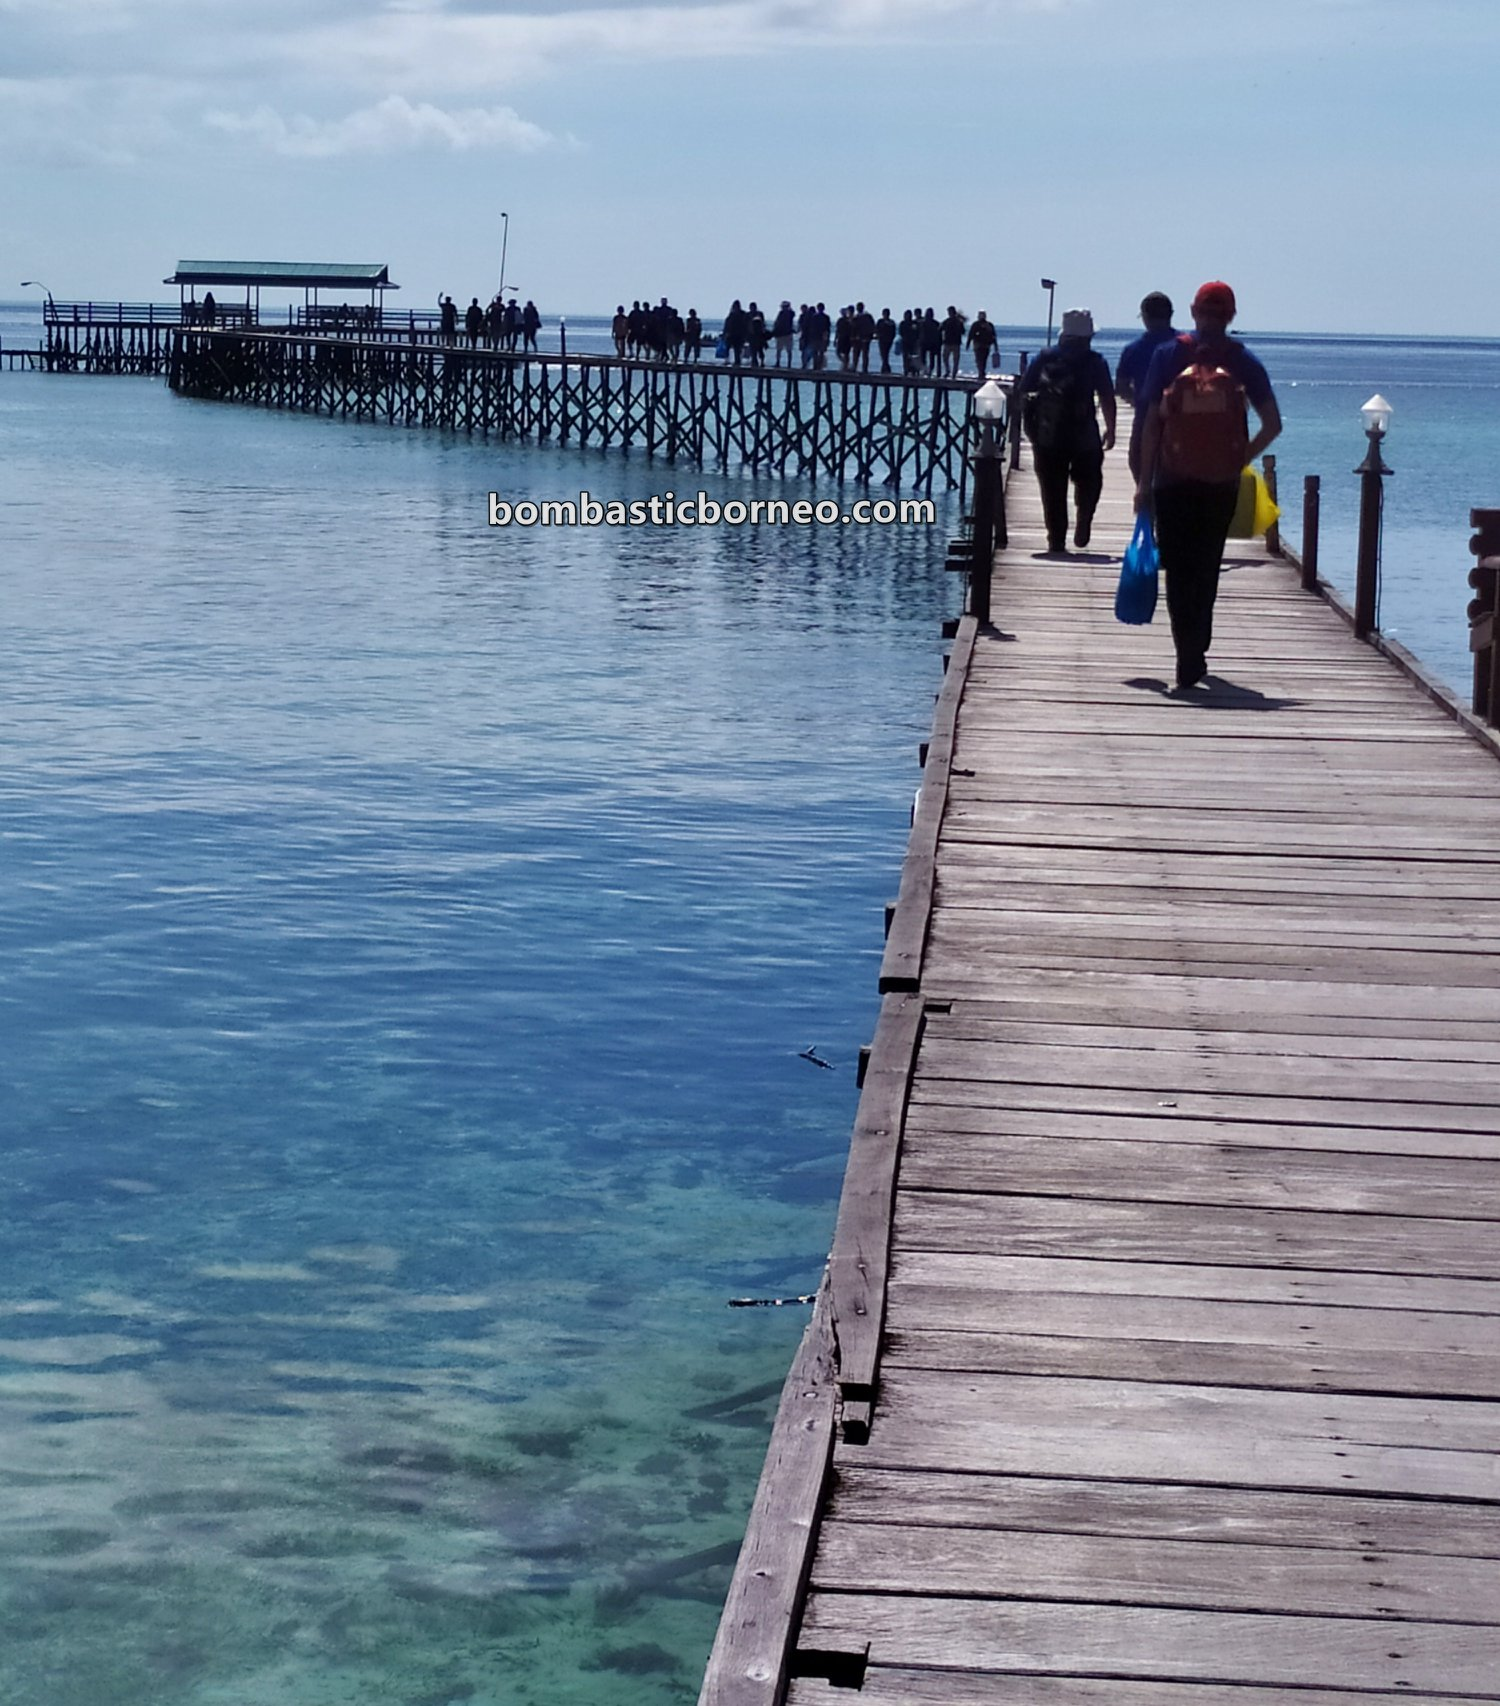 Derawan Archipelago, backpackers, Destination, exploration, nature, hidden paradise, snorkelling, Berau, Pariwisata, Tourist attraction, travel guide, Cross Border, Borneo, 印尼东加里曼丹, 达拉湾岛潜水天堂,